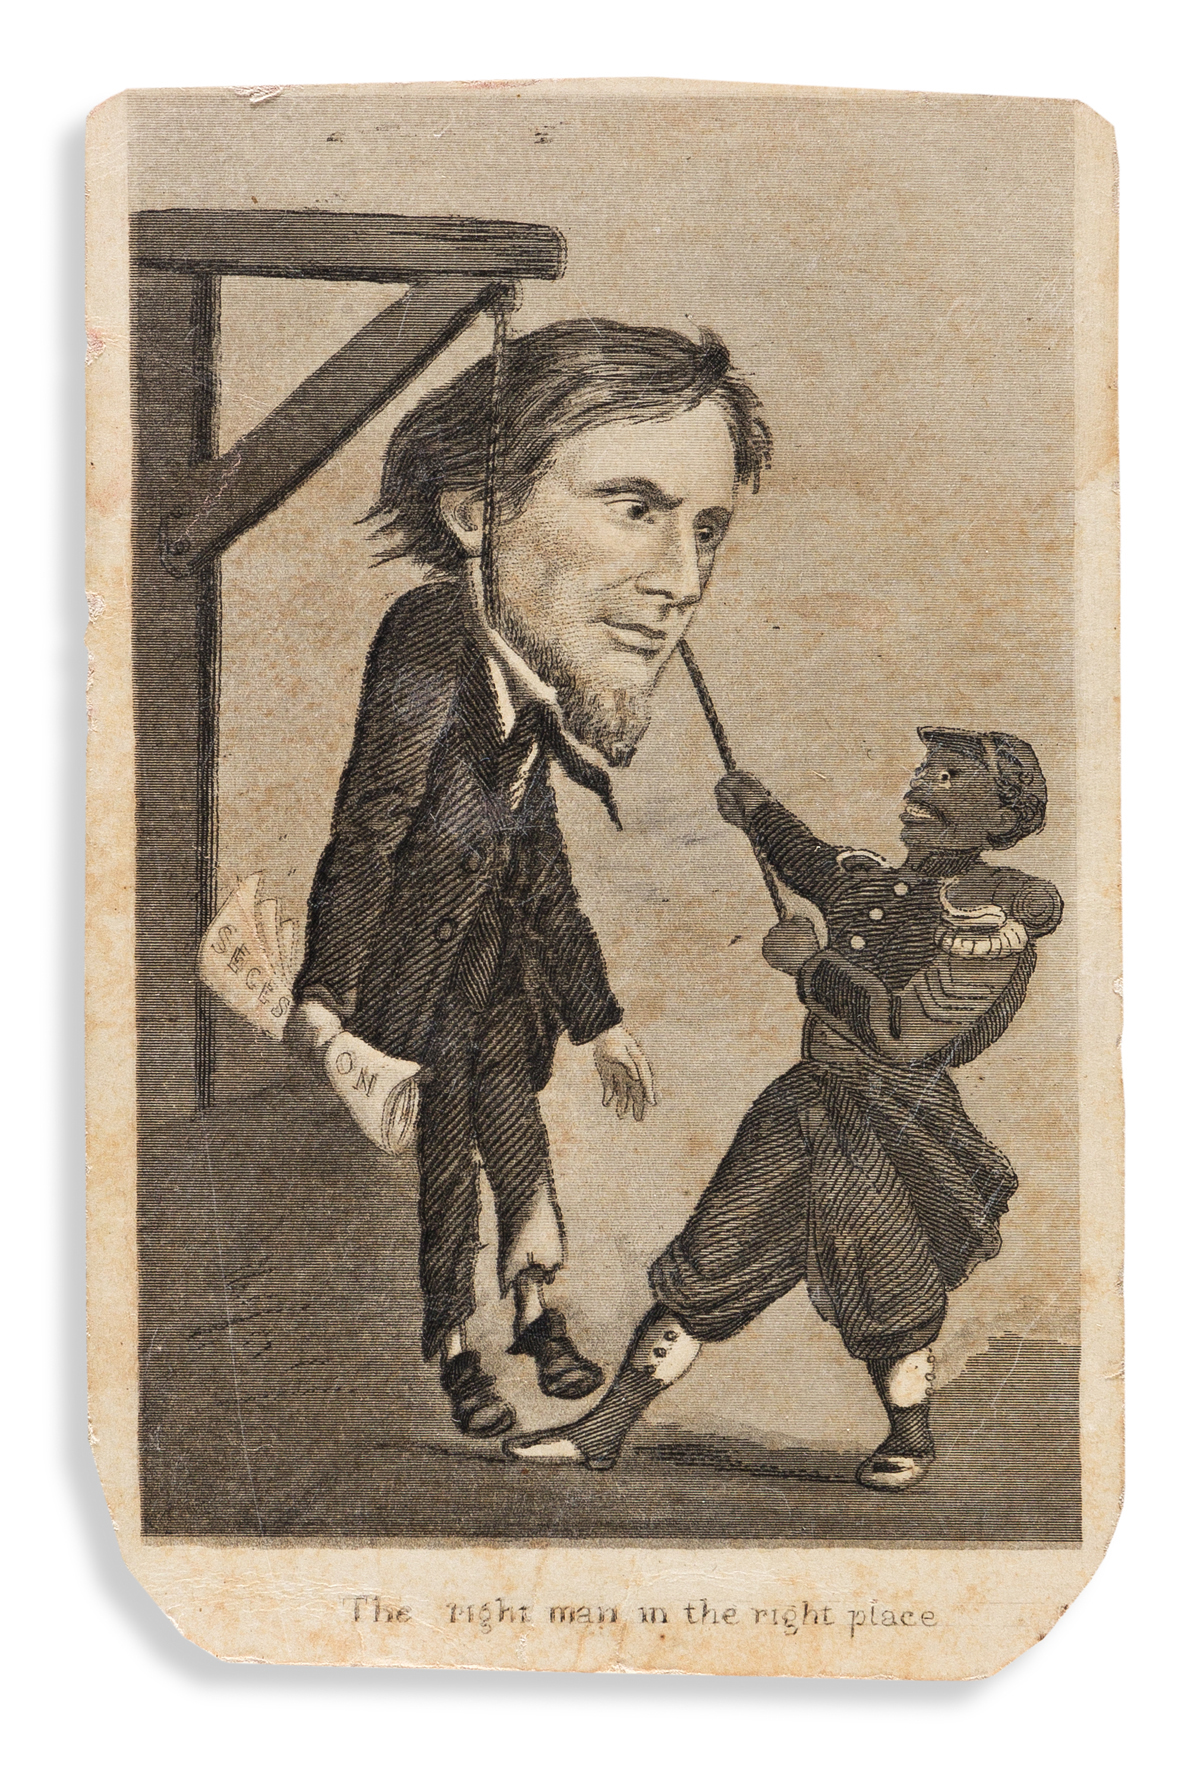 (SLAVERY AND ABOLITION.) The Right Man in the Right Place caricature of justice for Jefferson Davis.